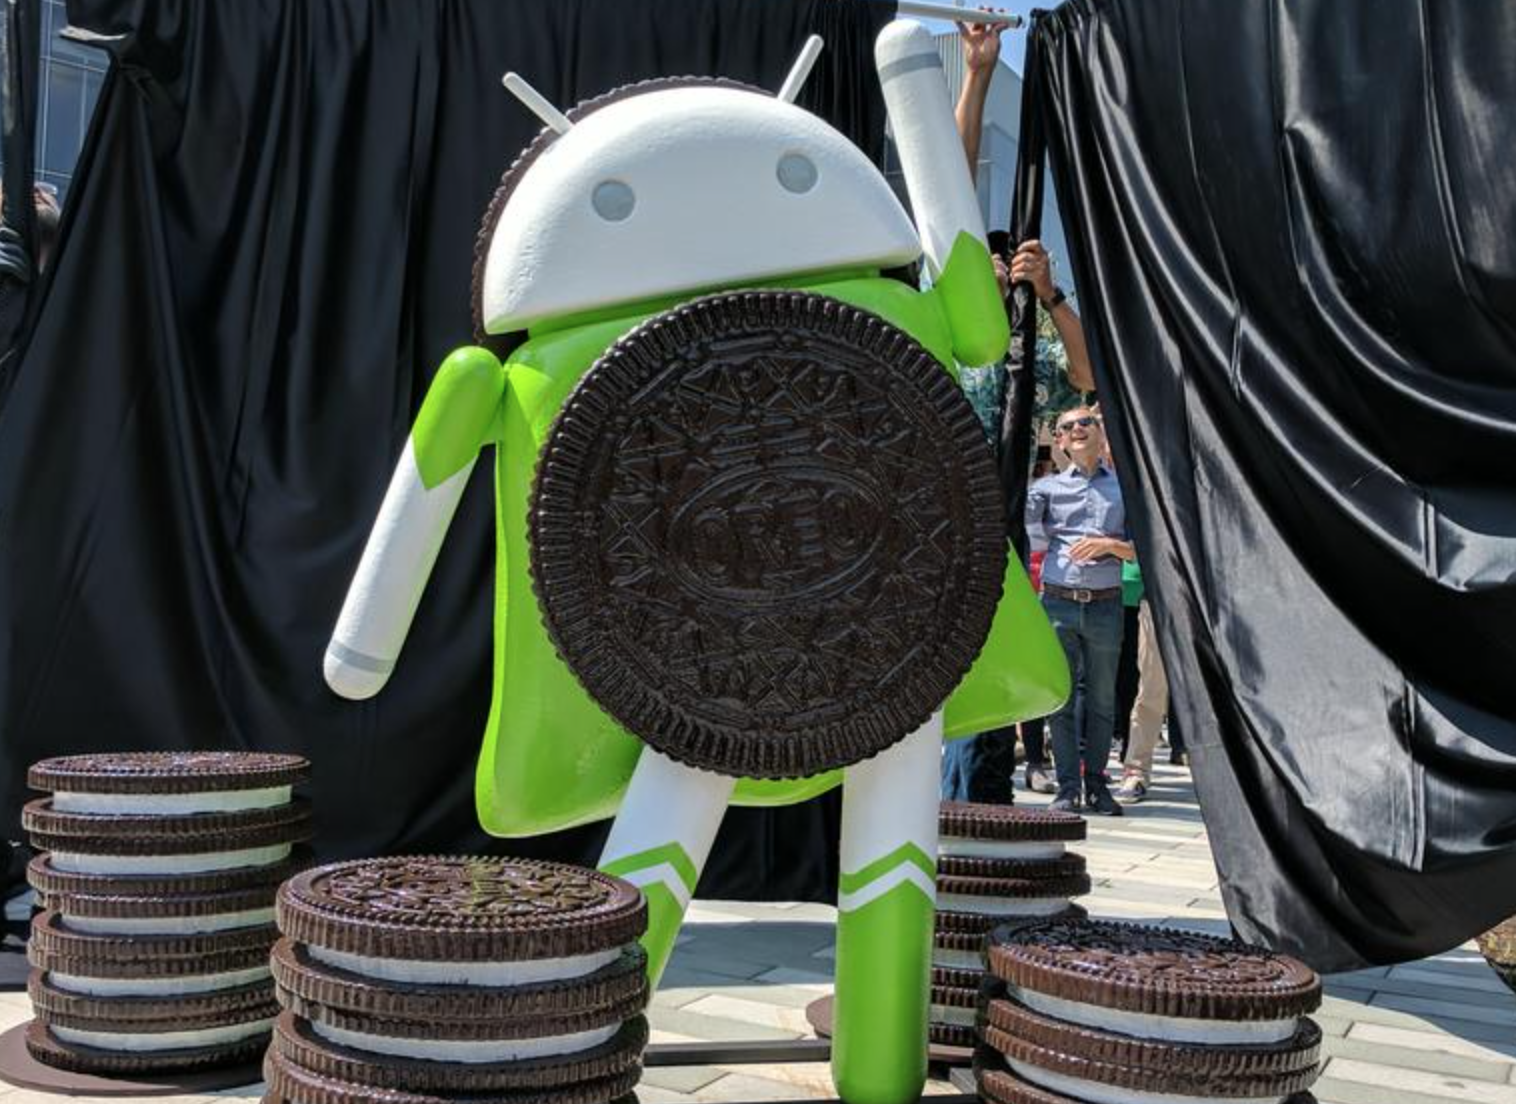 Android Oreo Prefers Mobile Data Even When WiFi Is Turned On